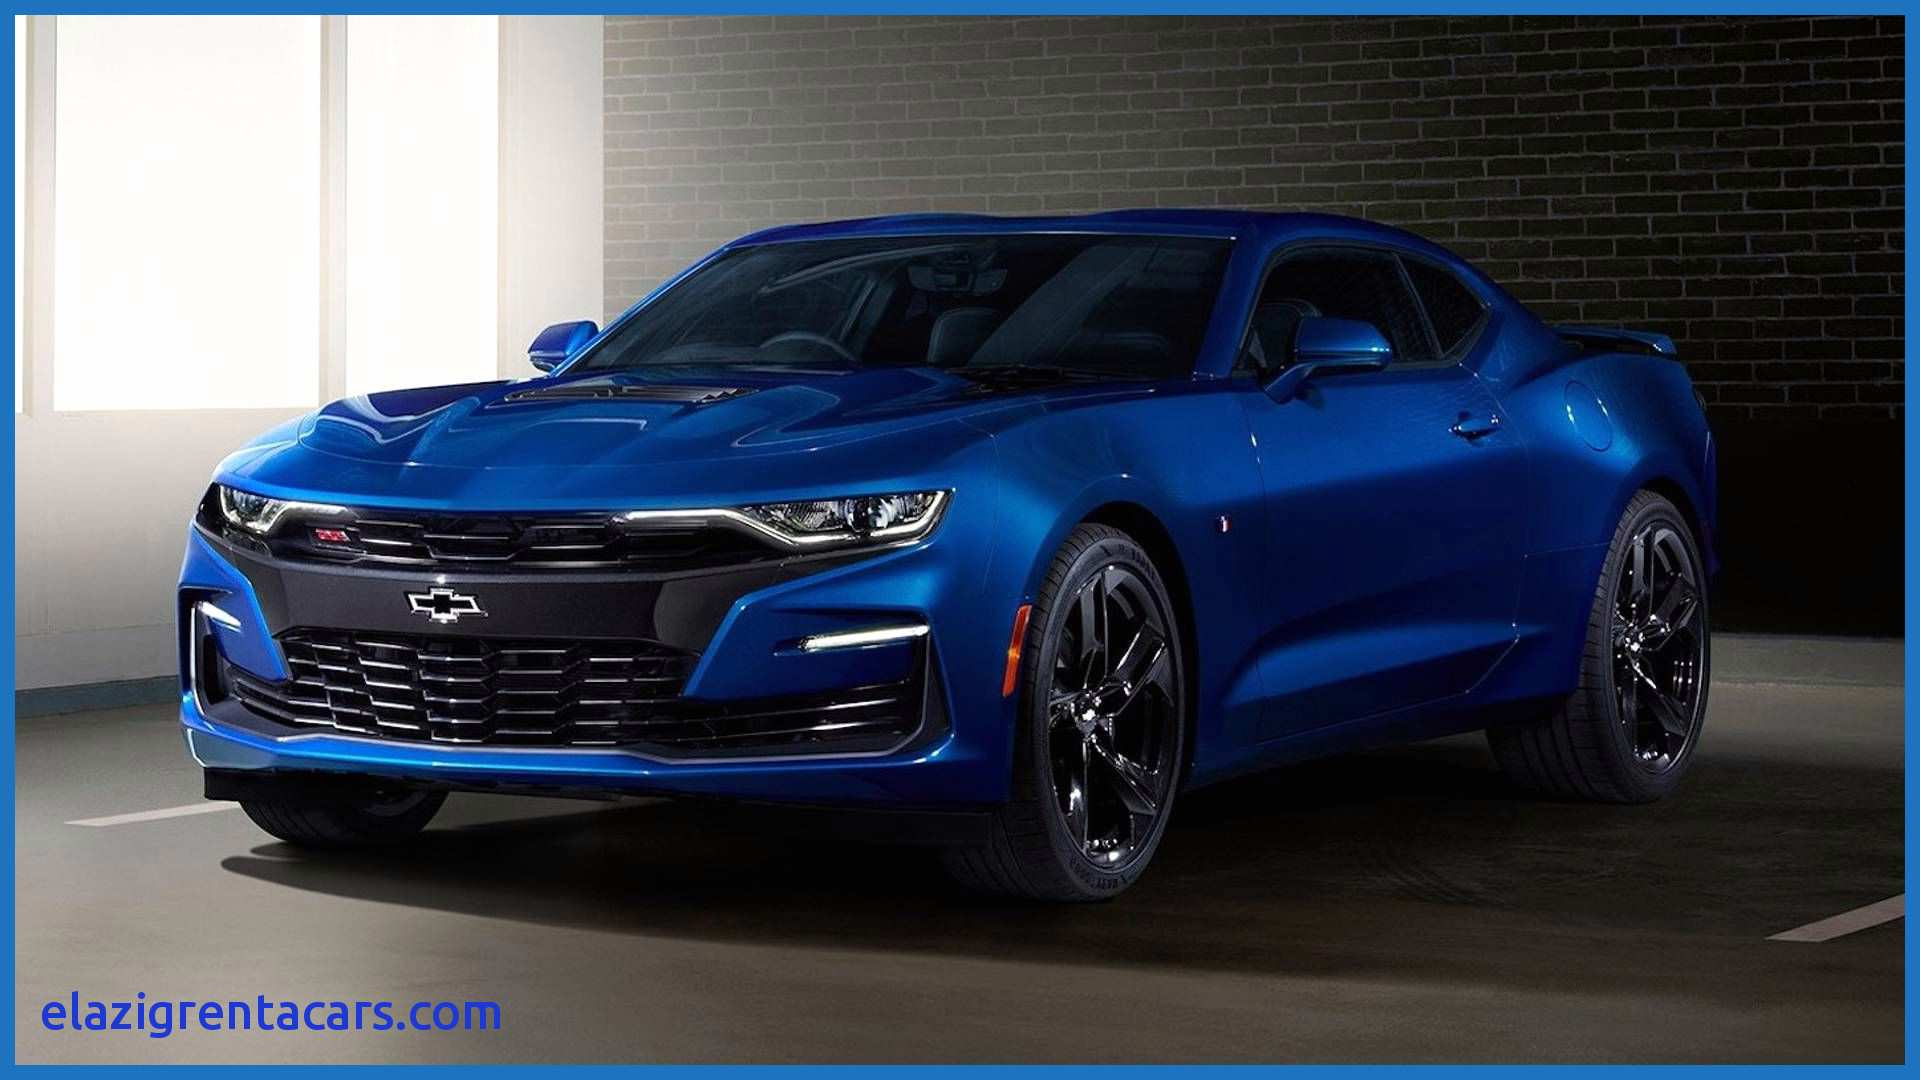 65 New 2020 Chevy Monte Carlo Redesign with 2020 Chevy Monte Carlo